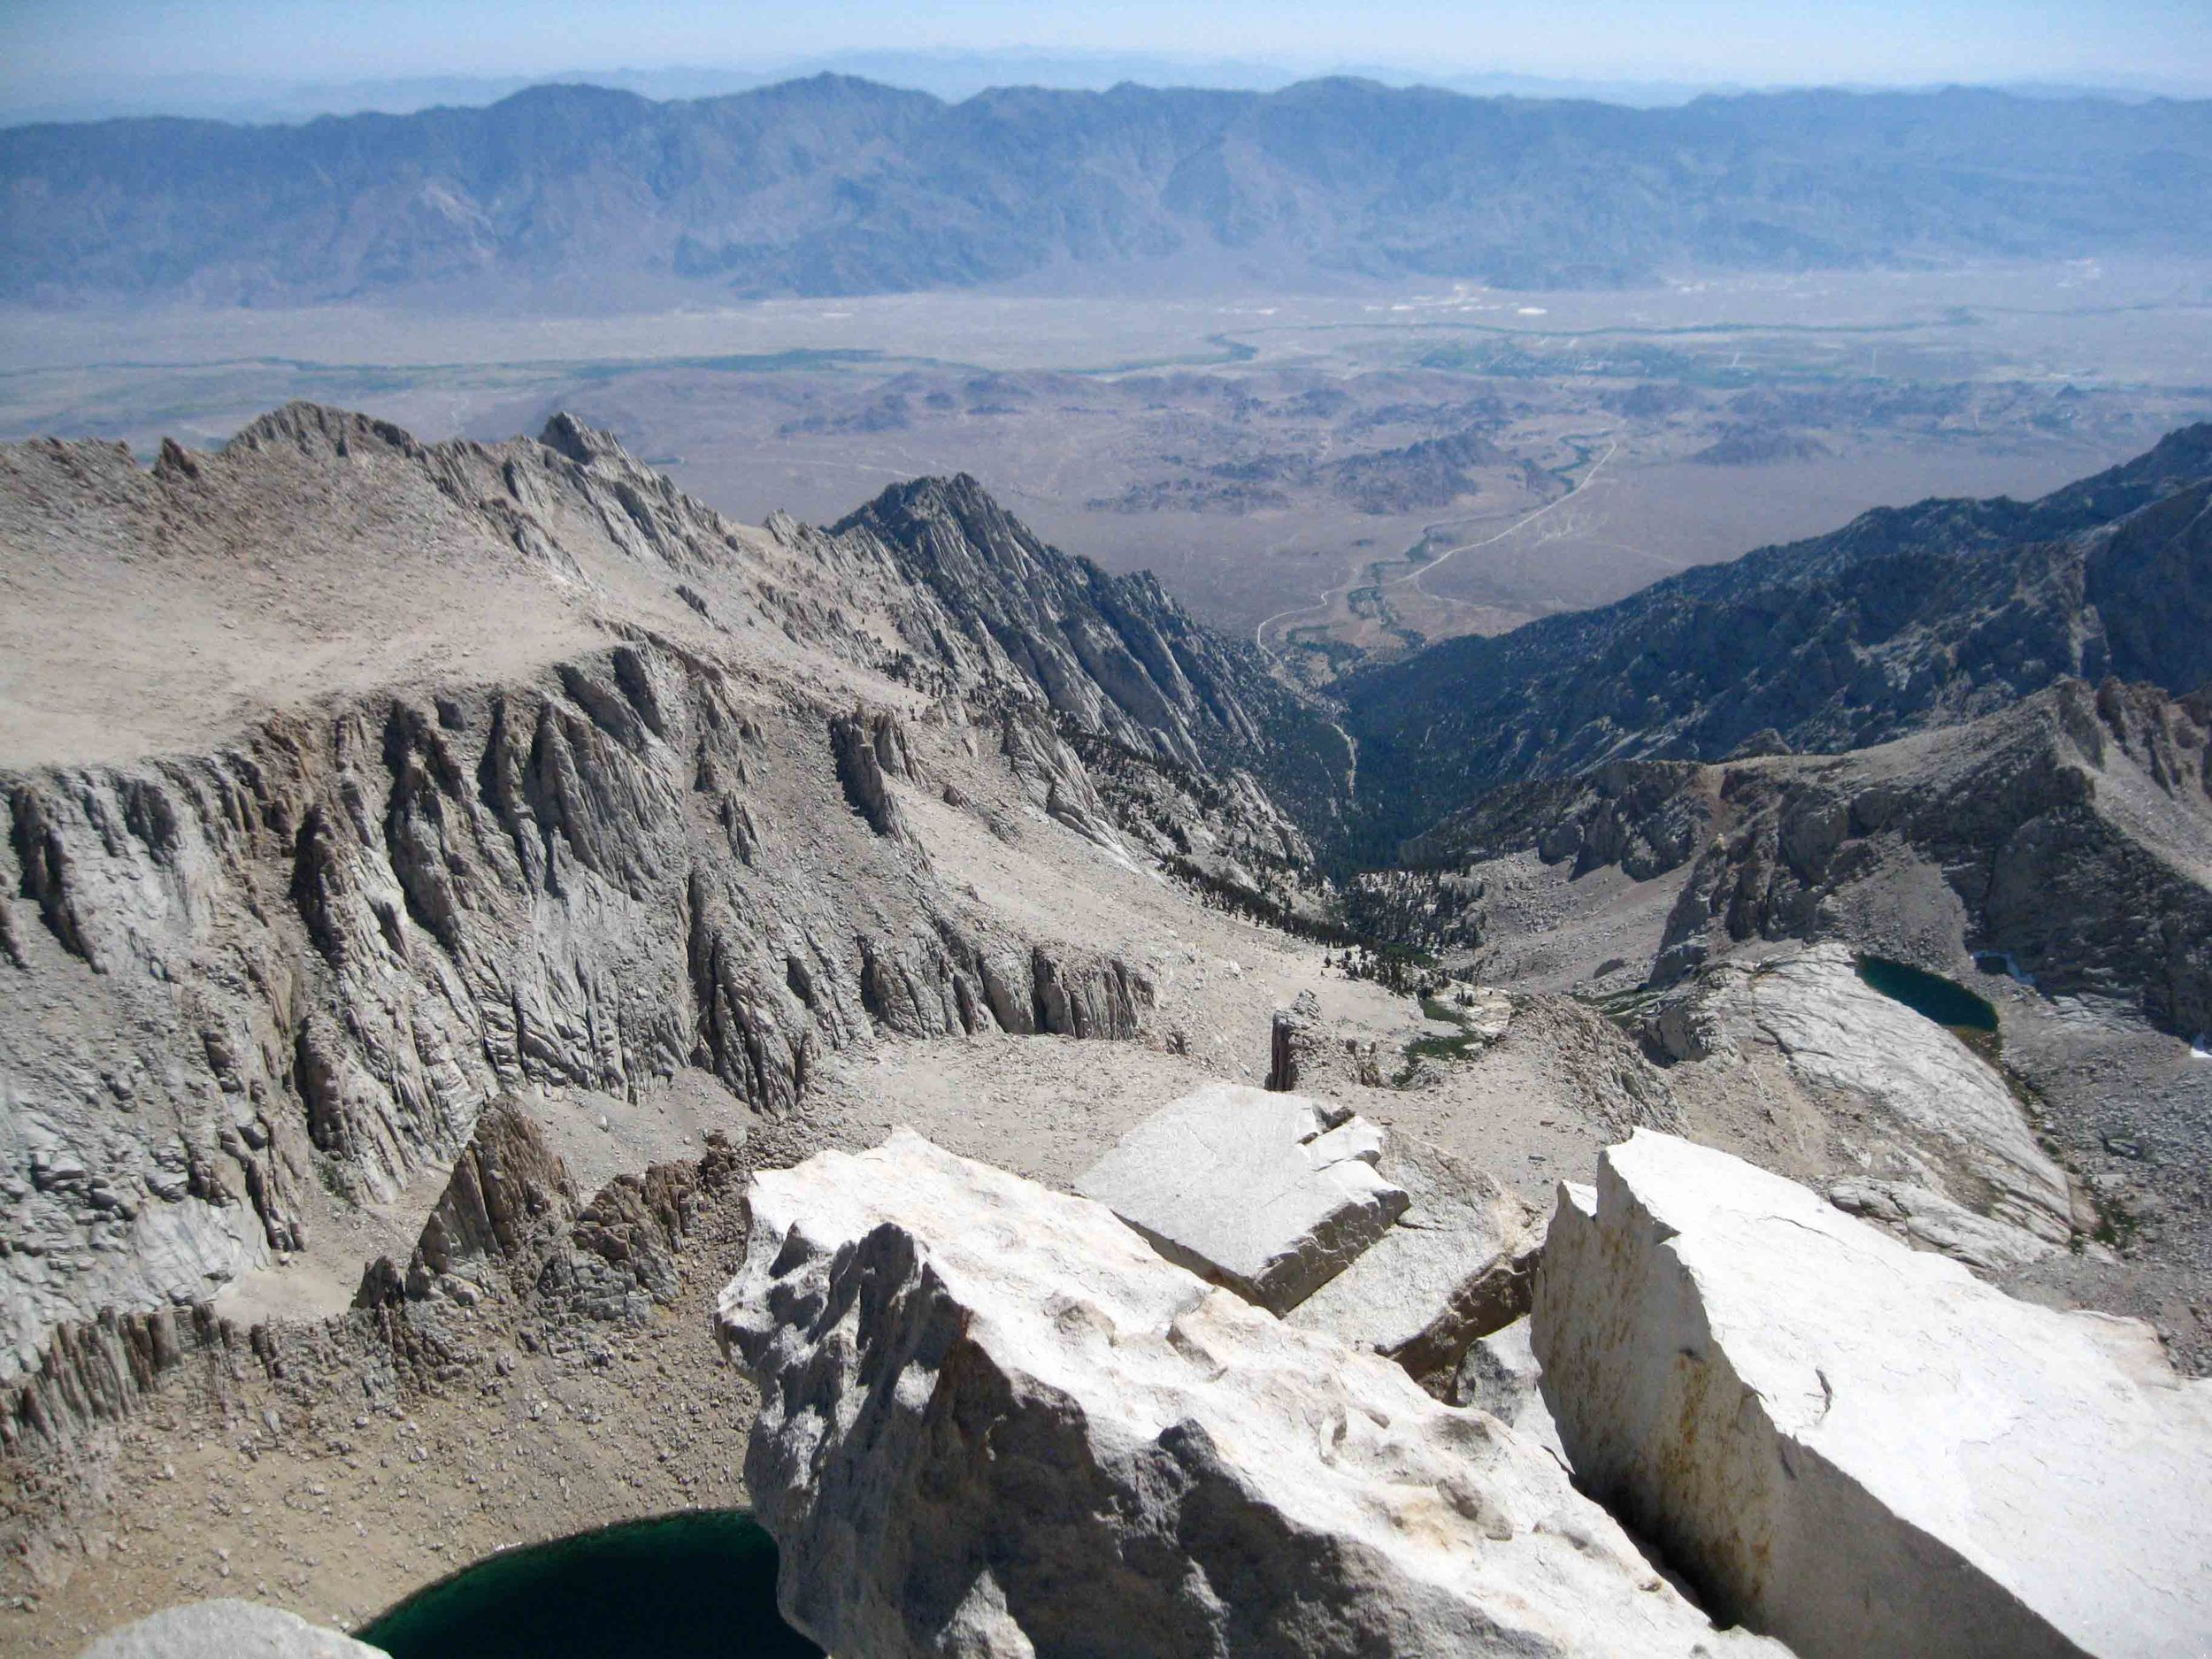 The view looking East from the top of Mount Whitney!